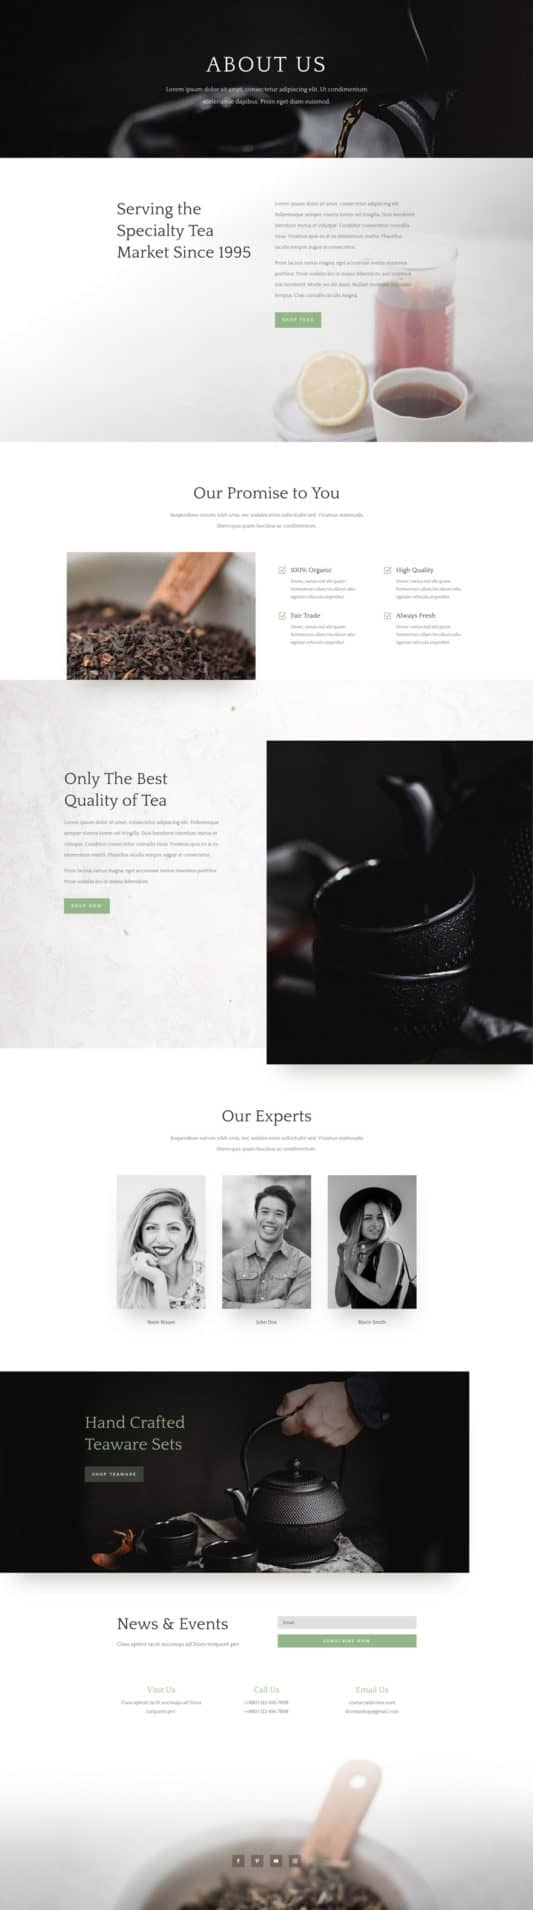 Tea Shop Web Design 1